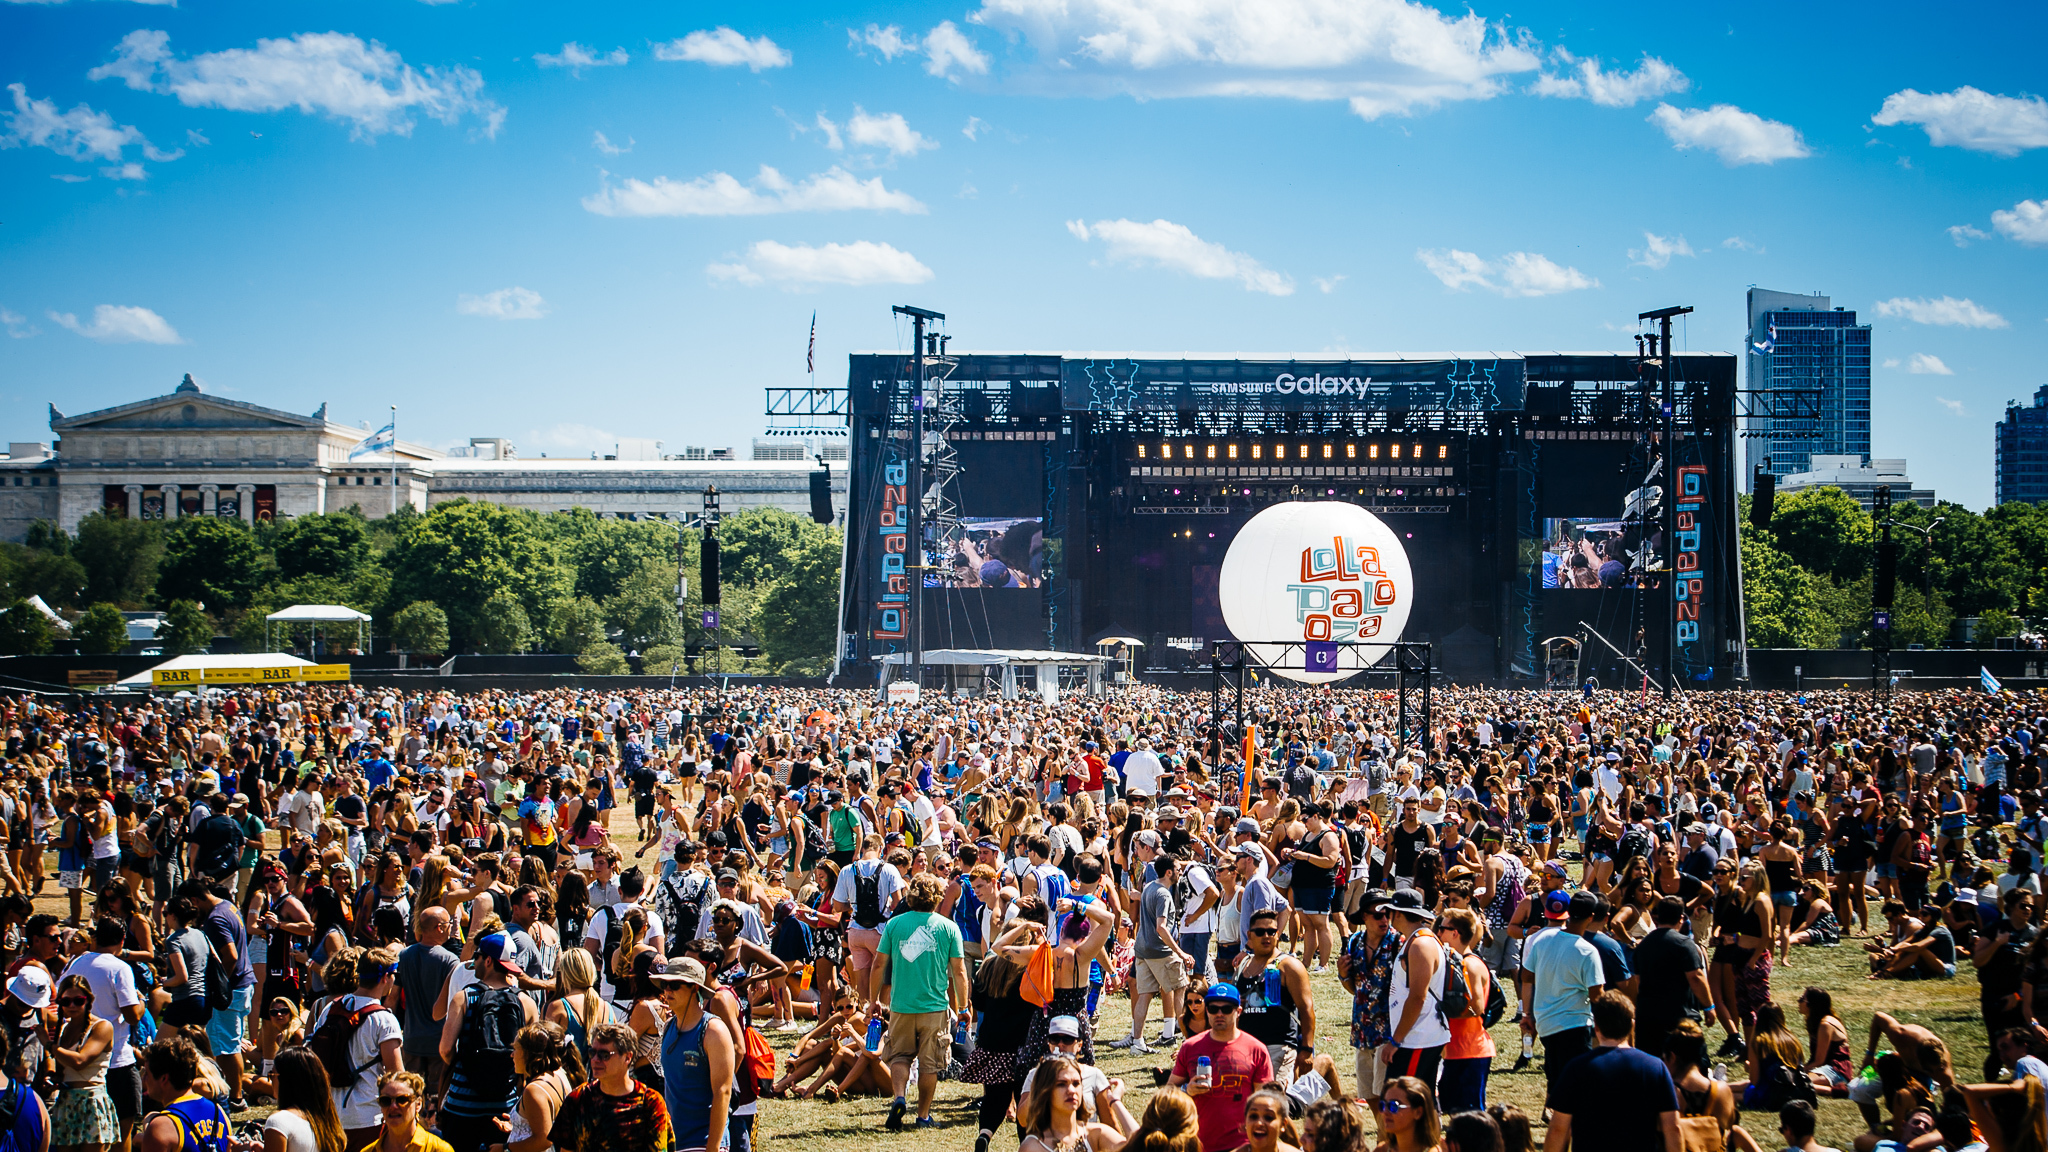 Festival-goers will rejoice in Lolla's Instagram-style lost and found